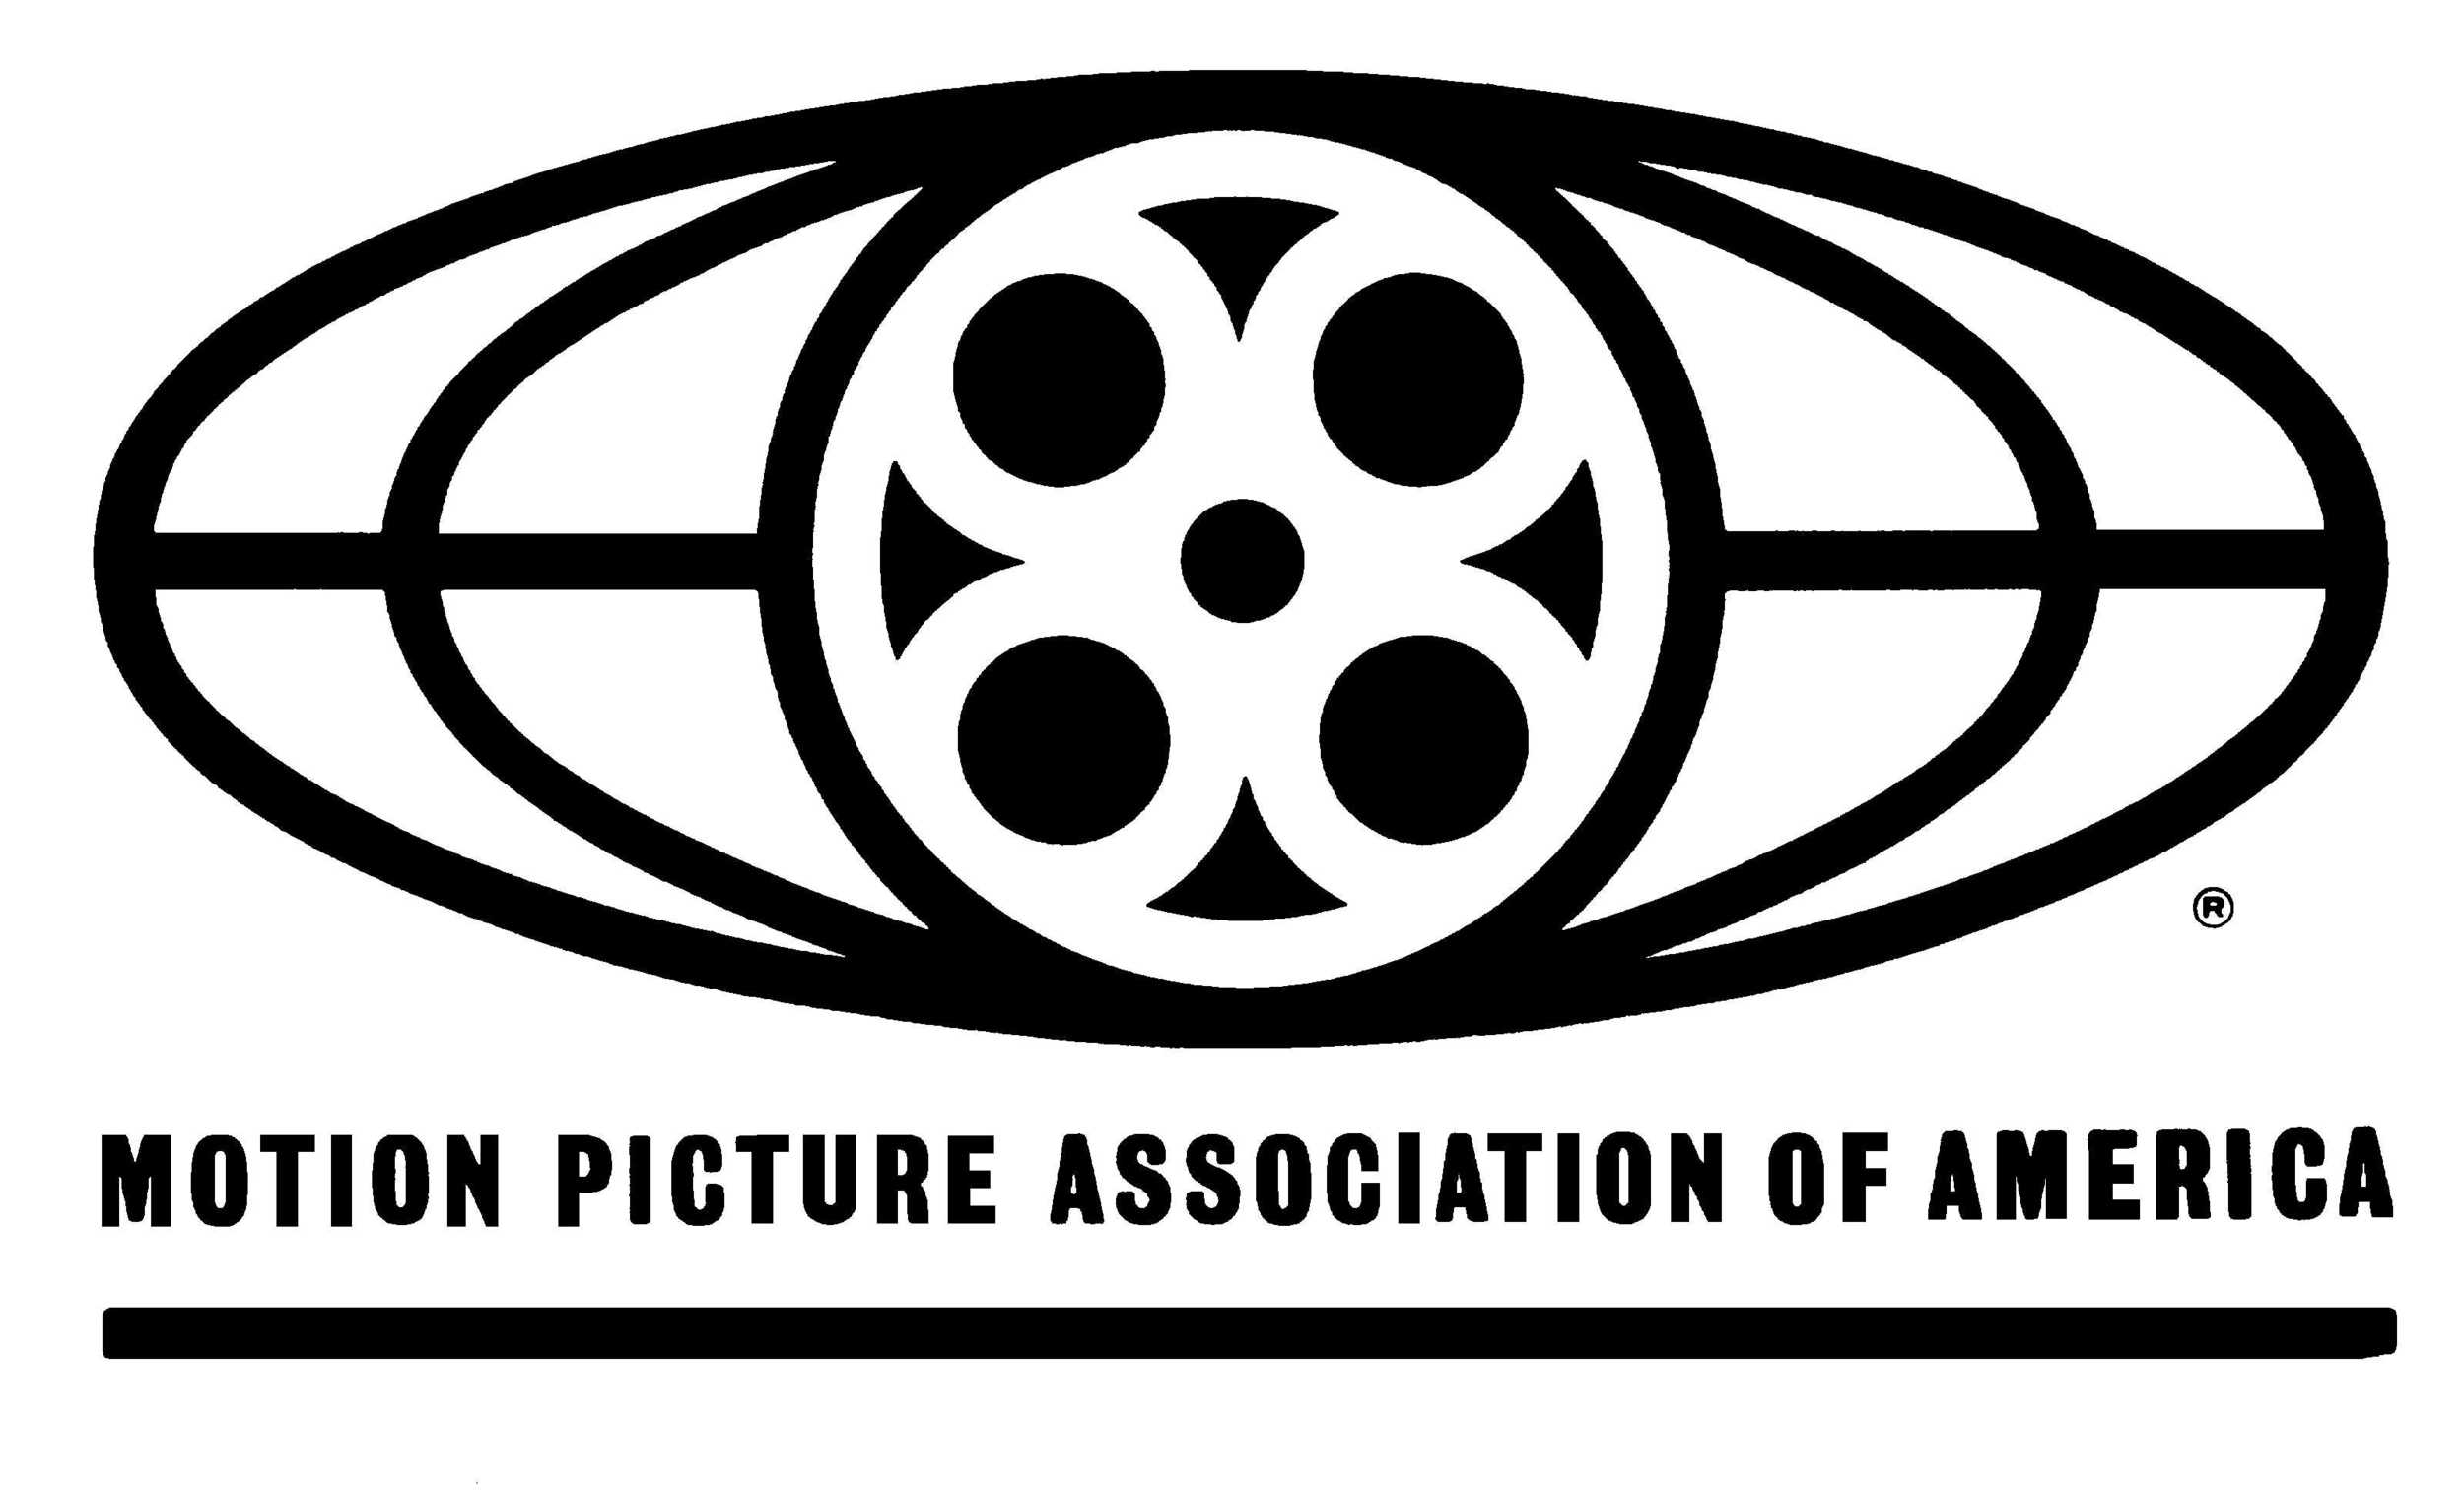 Motion Picture Association of America